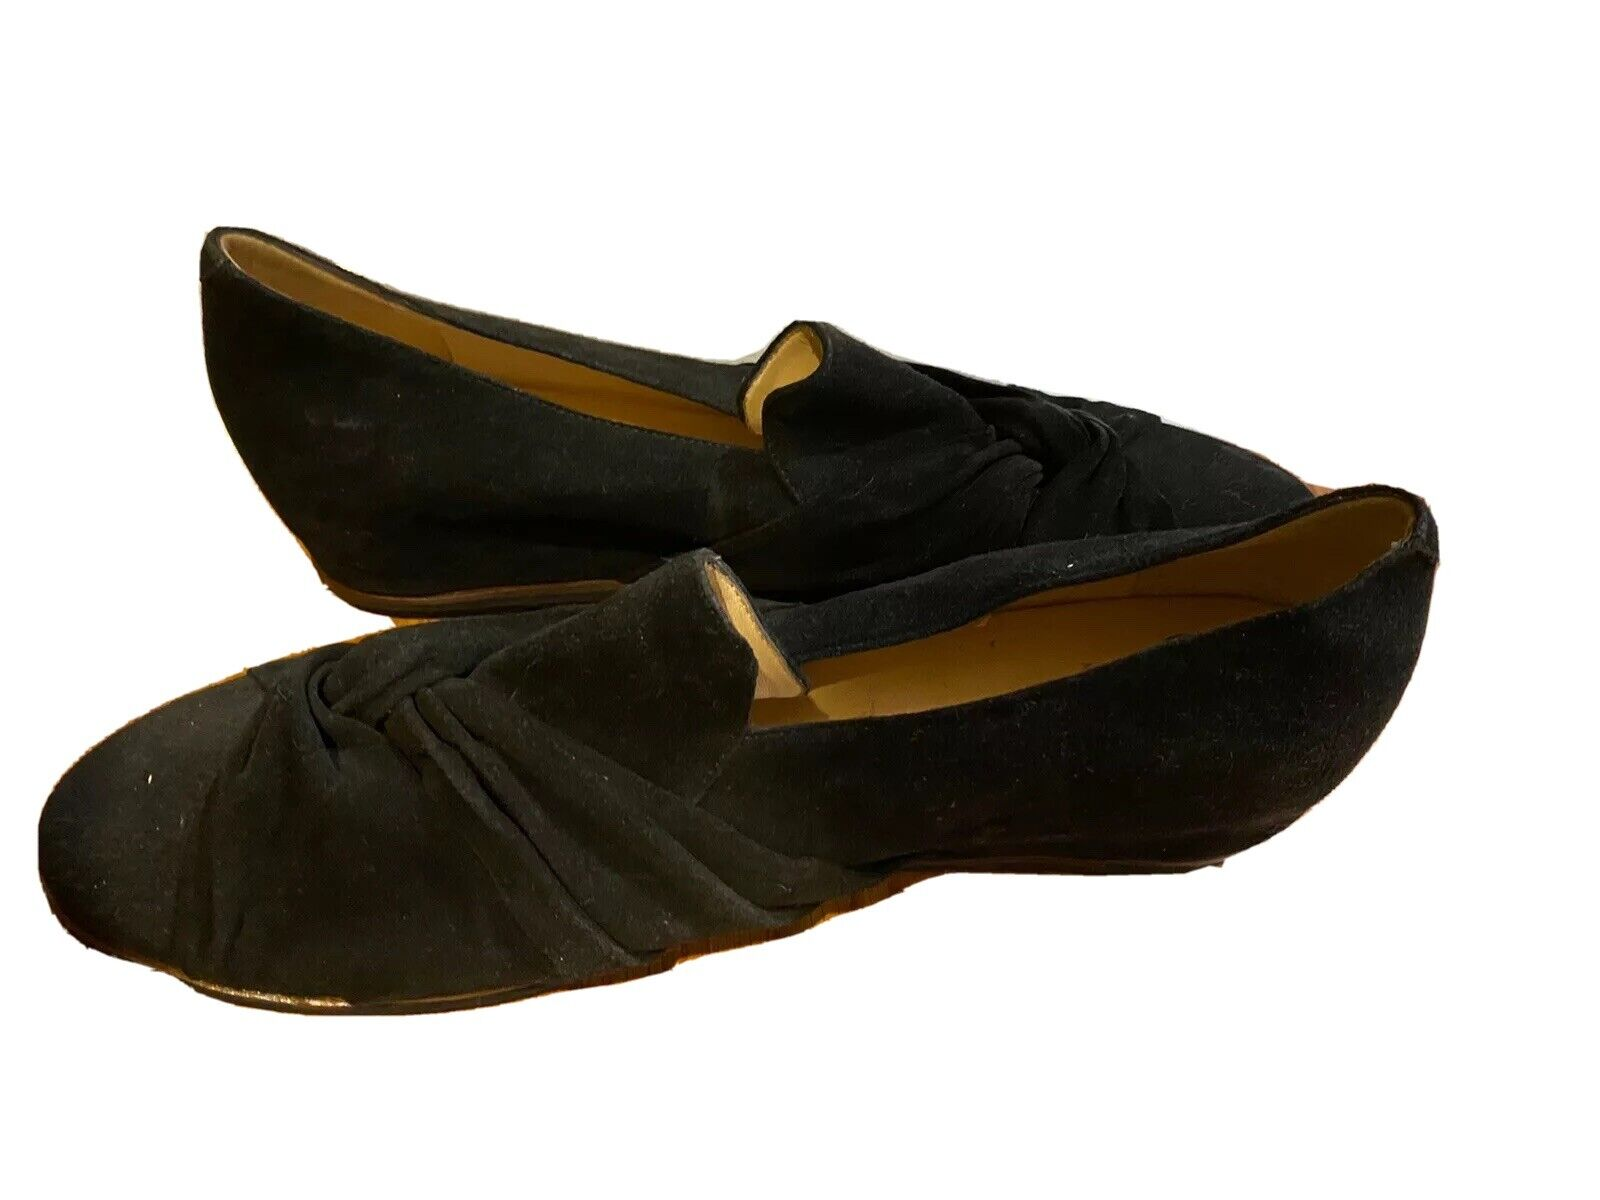 Amalfi 12M black Suede work loafers 1 1/4 patent heel-made in Italy - never worn